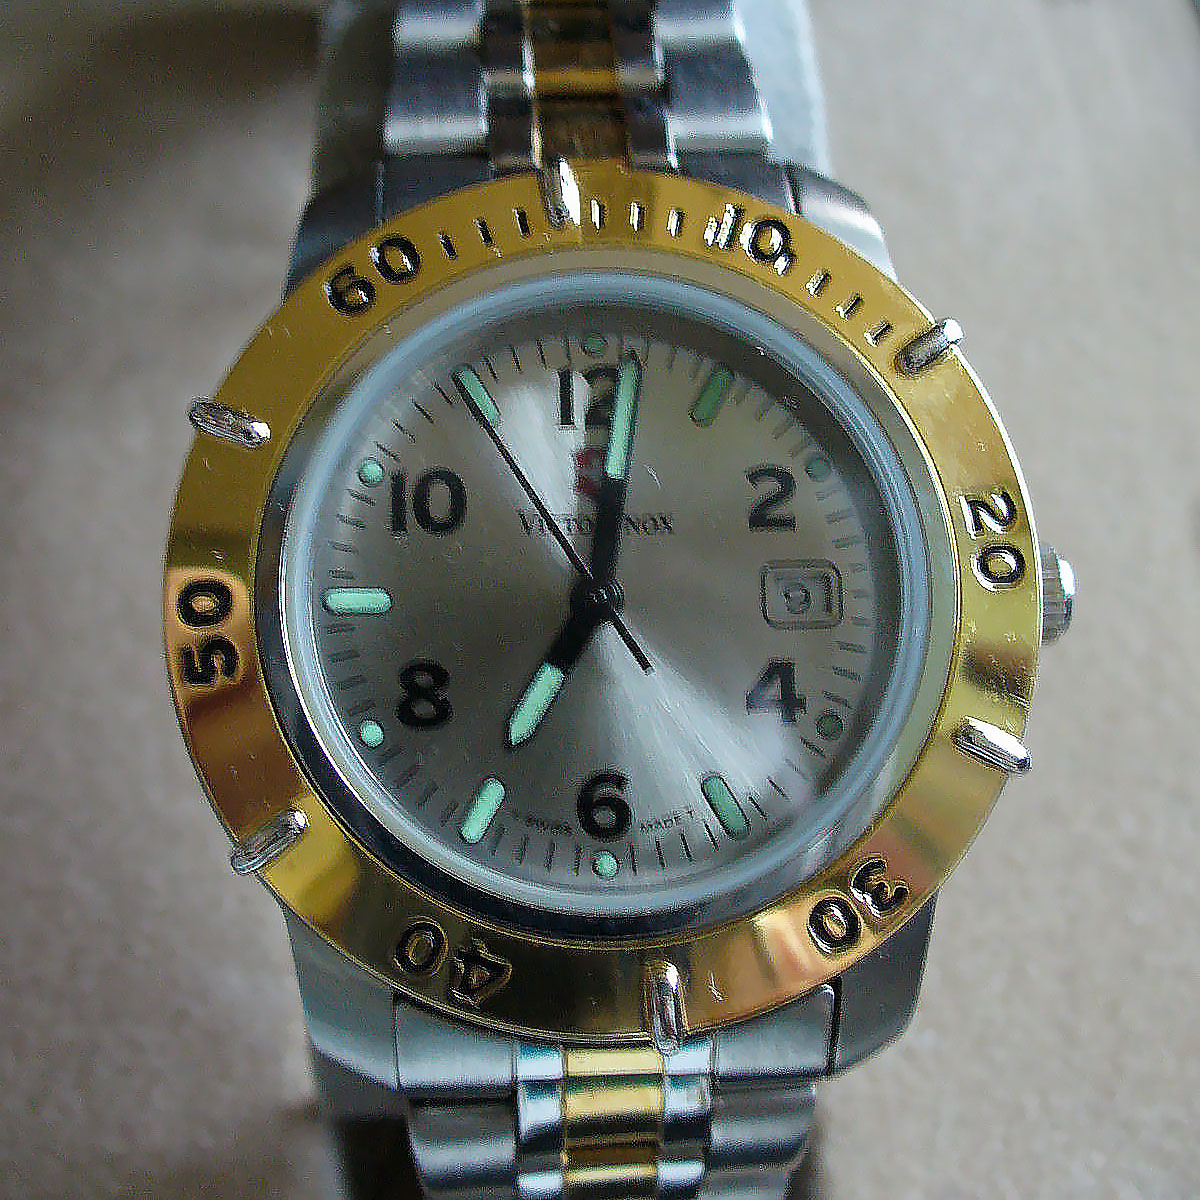 Avenger archives watch hunter watch reviews photos and articles for Avengers watches